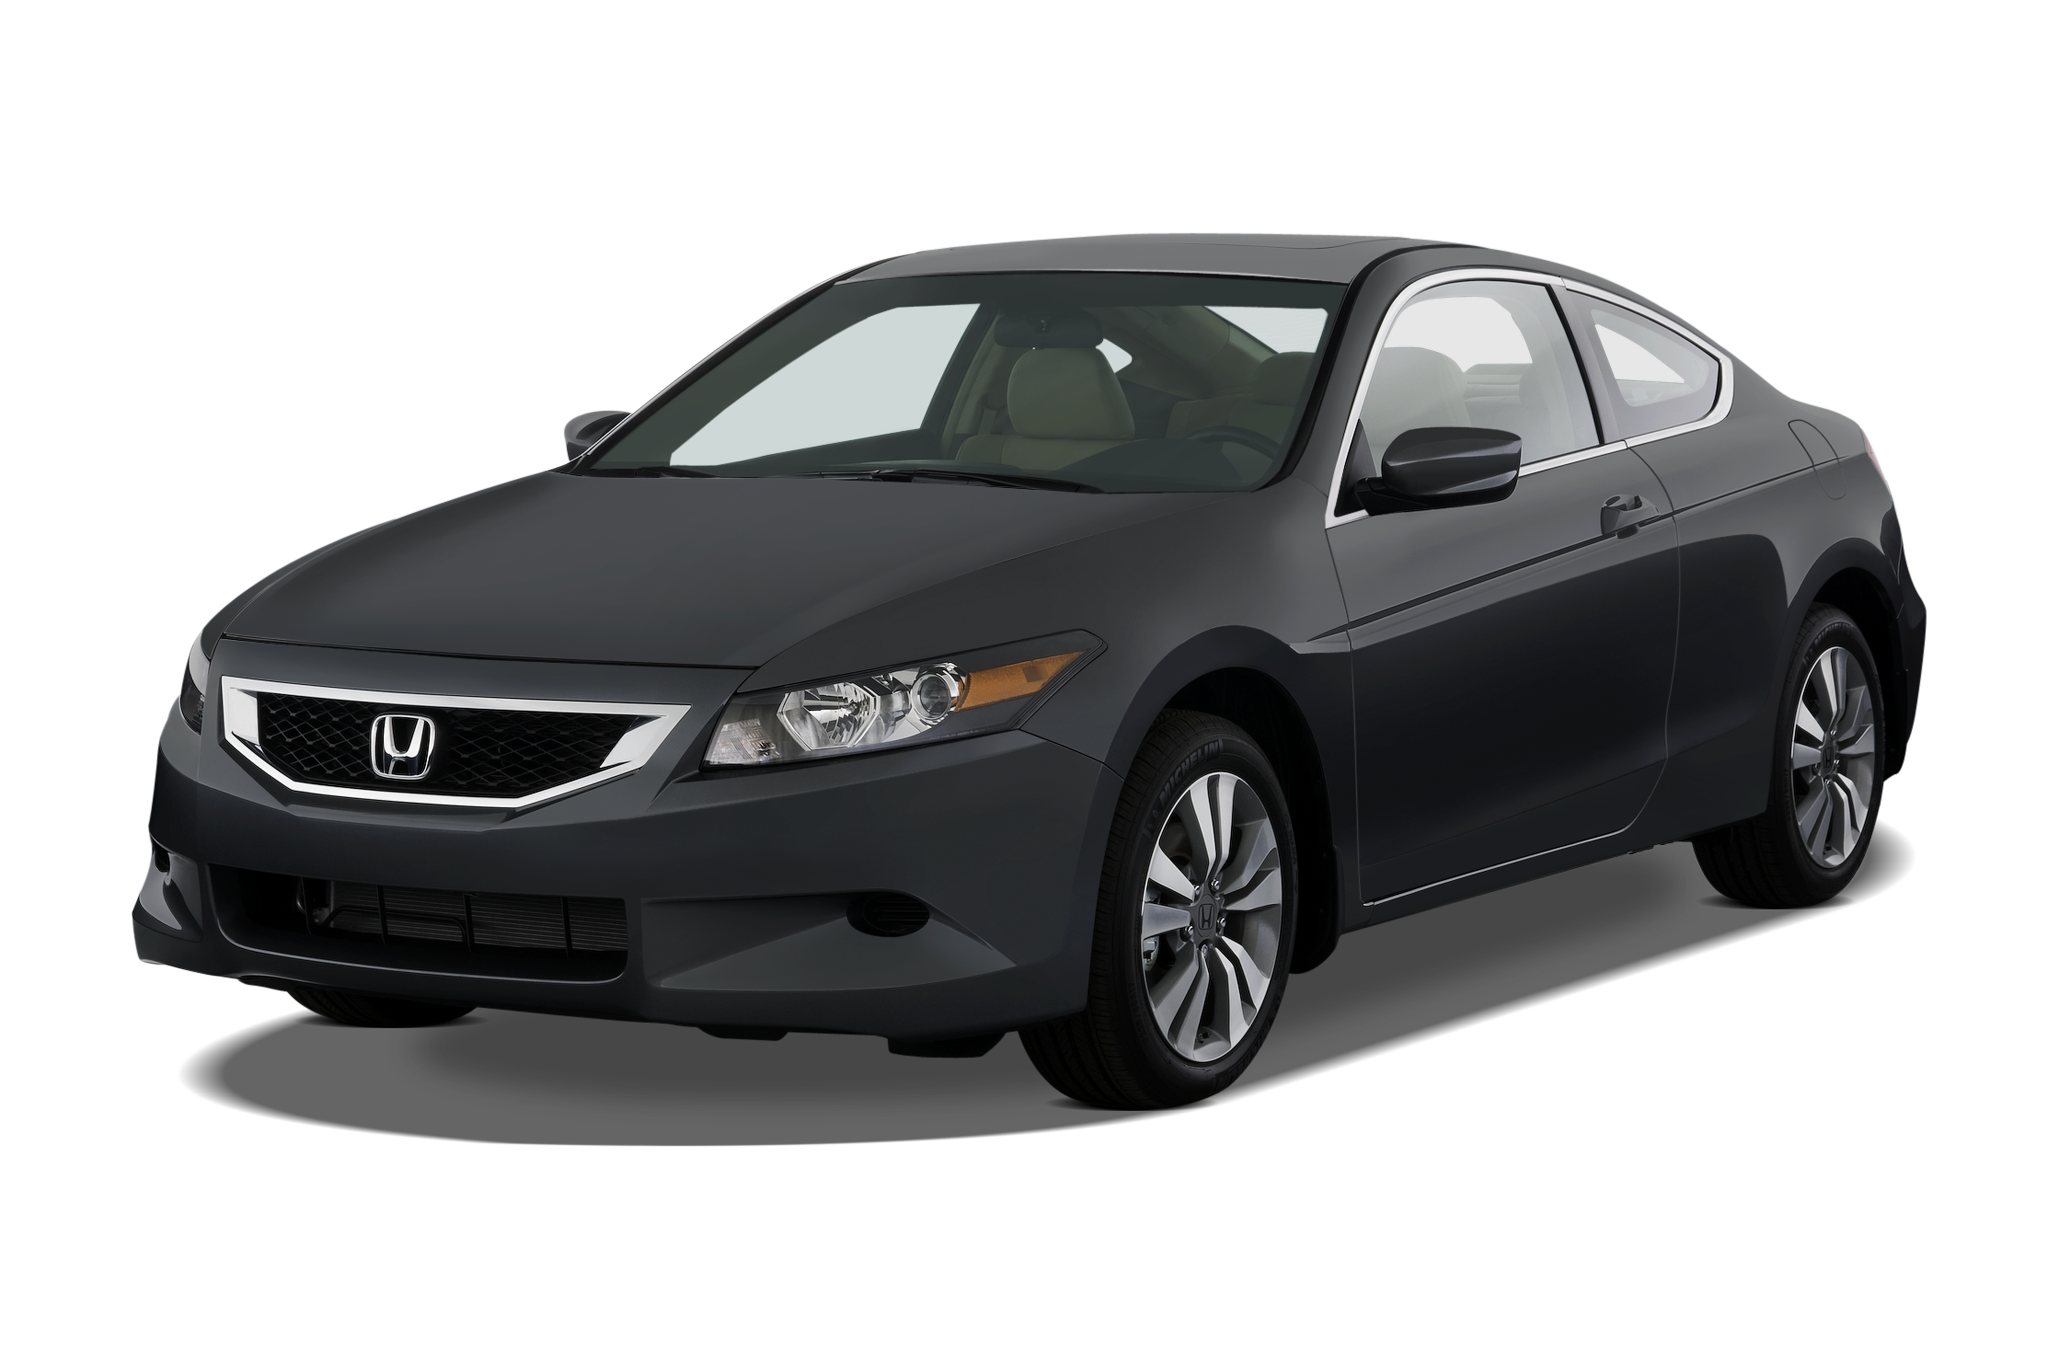 2010 honda accord coupe ex l honda midsize coupe review. Black Bedroom Furniture Sets. Home Design Ideas